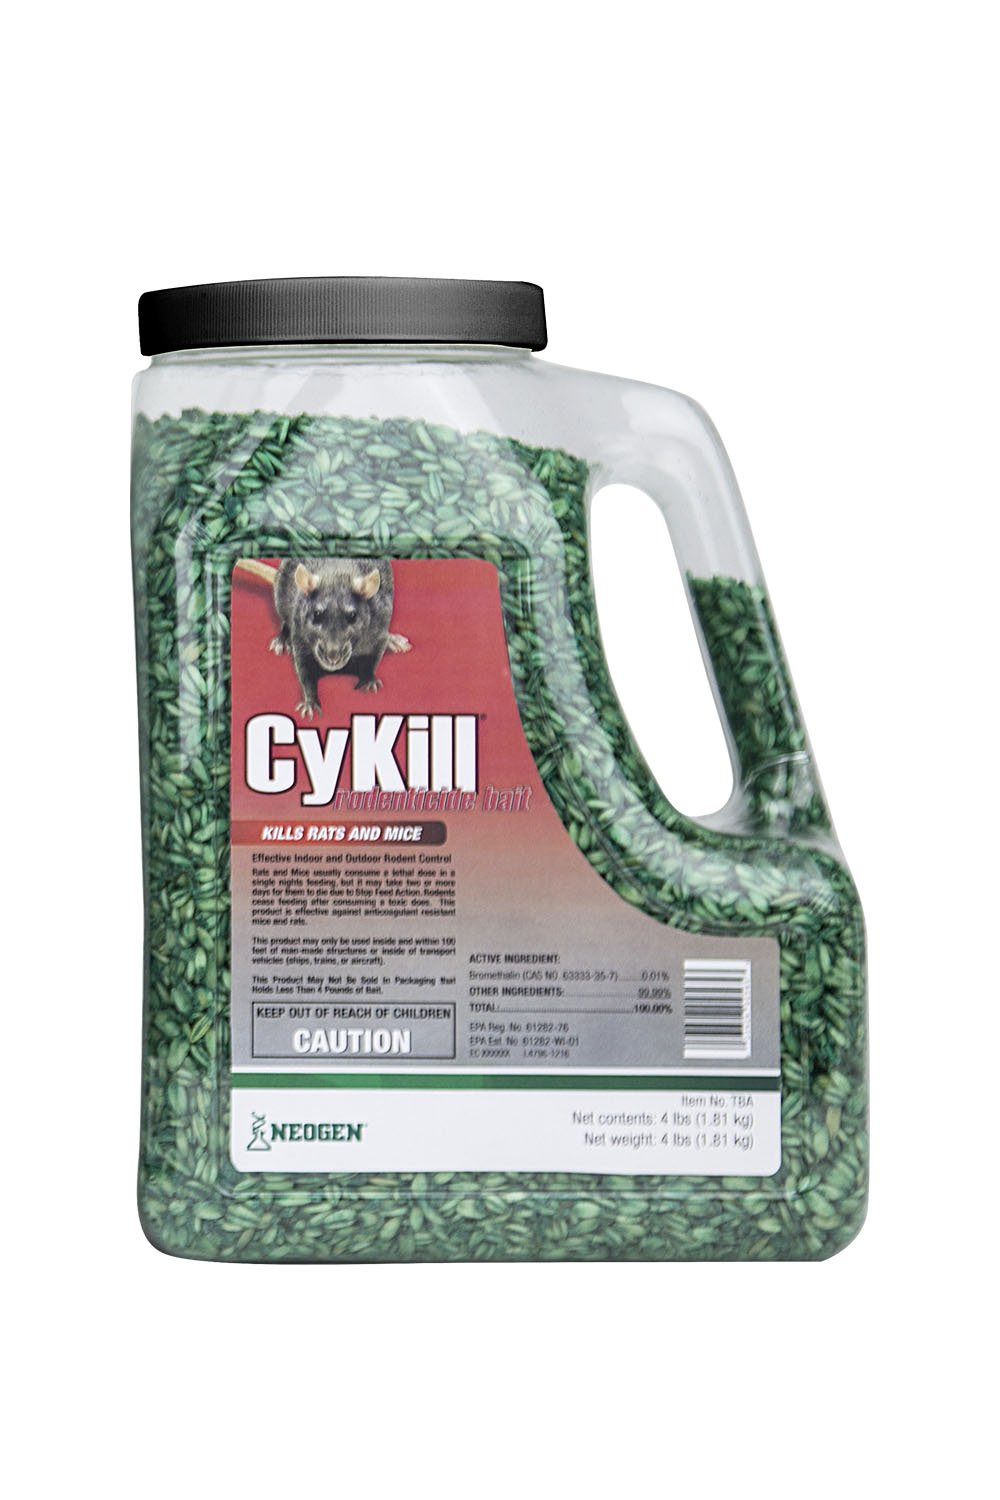 Cykill 112840 Bromethalin Rodenticide Bait